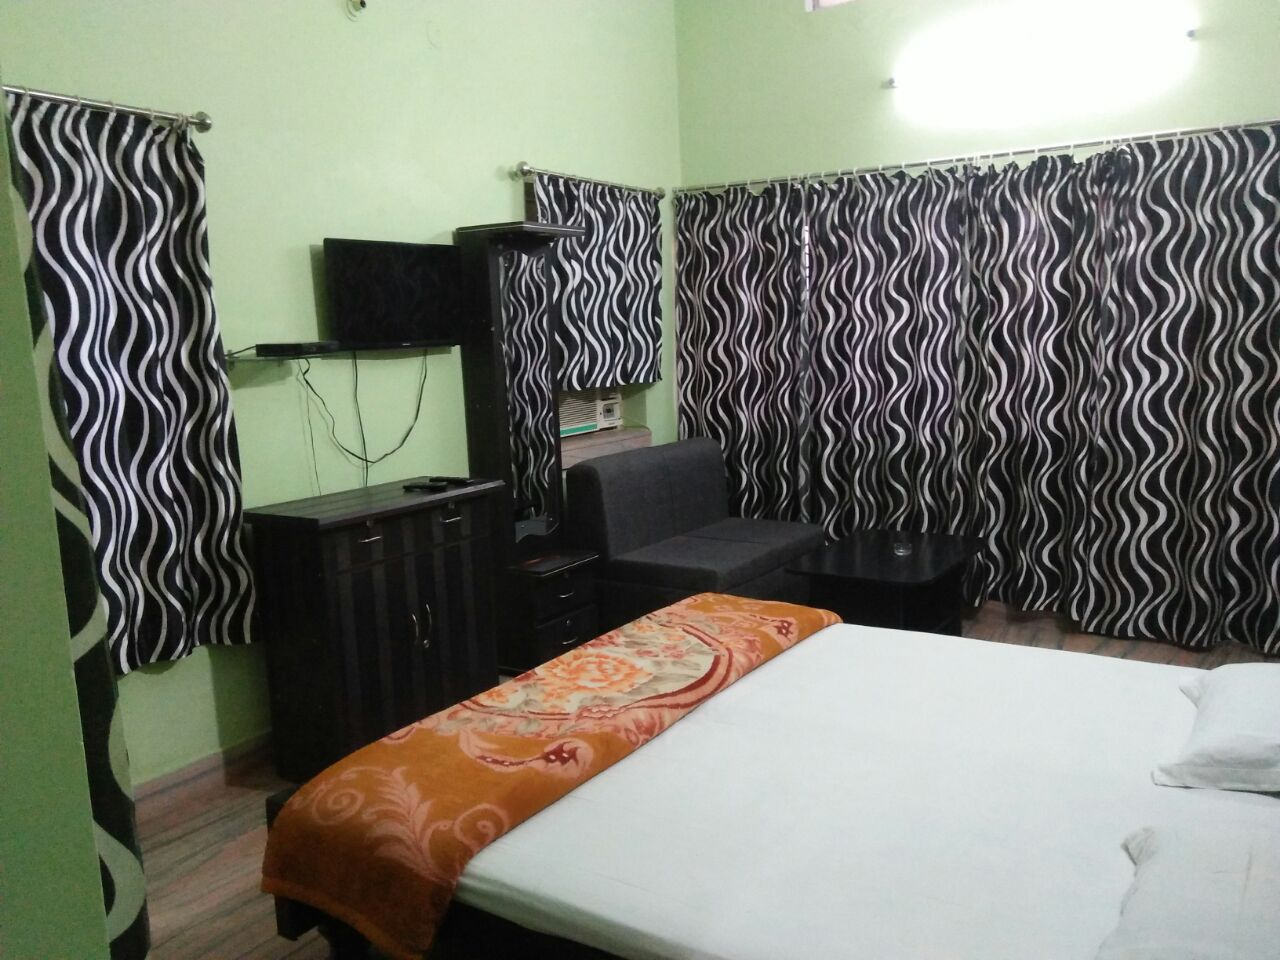 BEST GUEST HOUSE IN PATNA